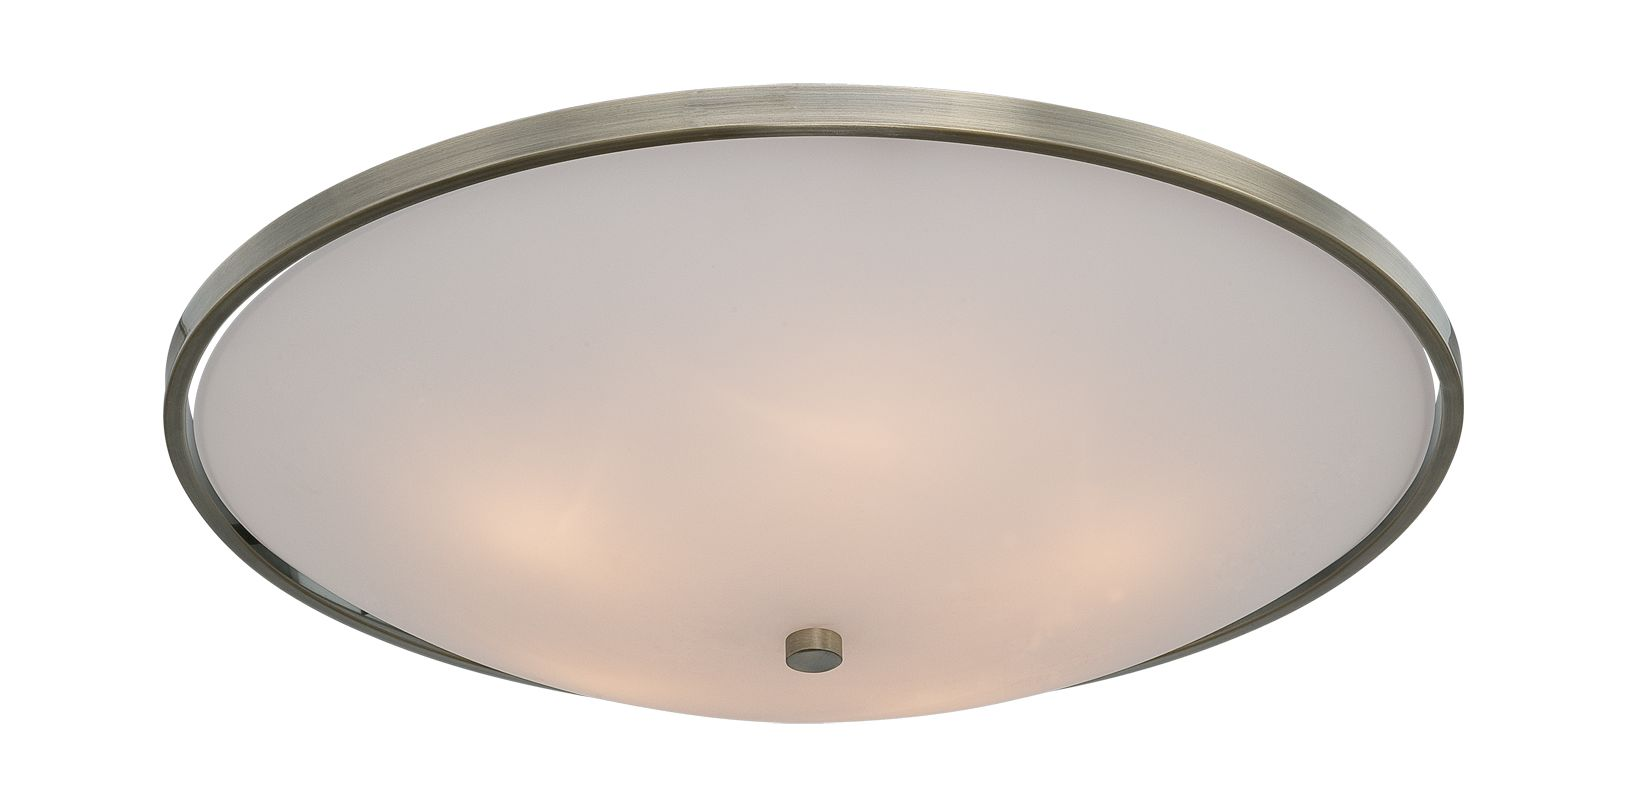 Eurofase Lighting 20371 5 Light Flush Mount Ceiling Fixture from the